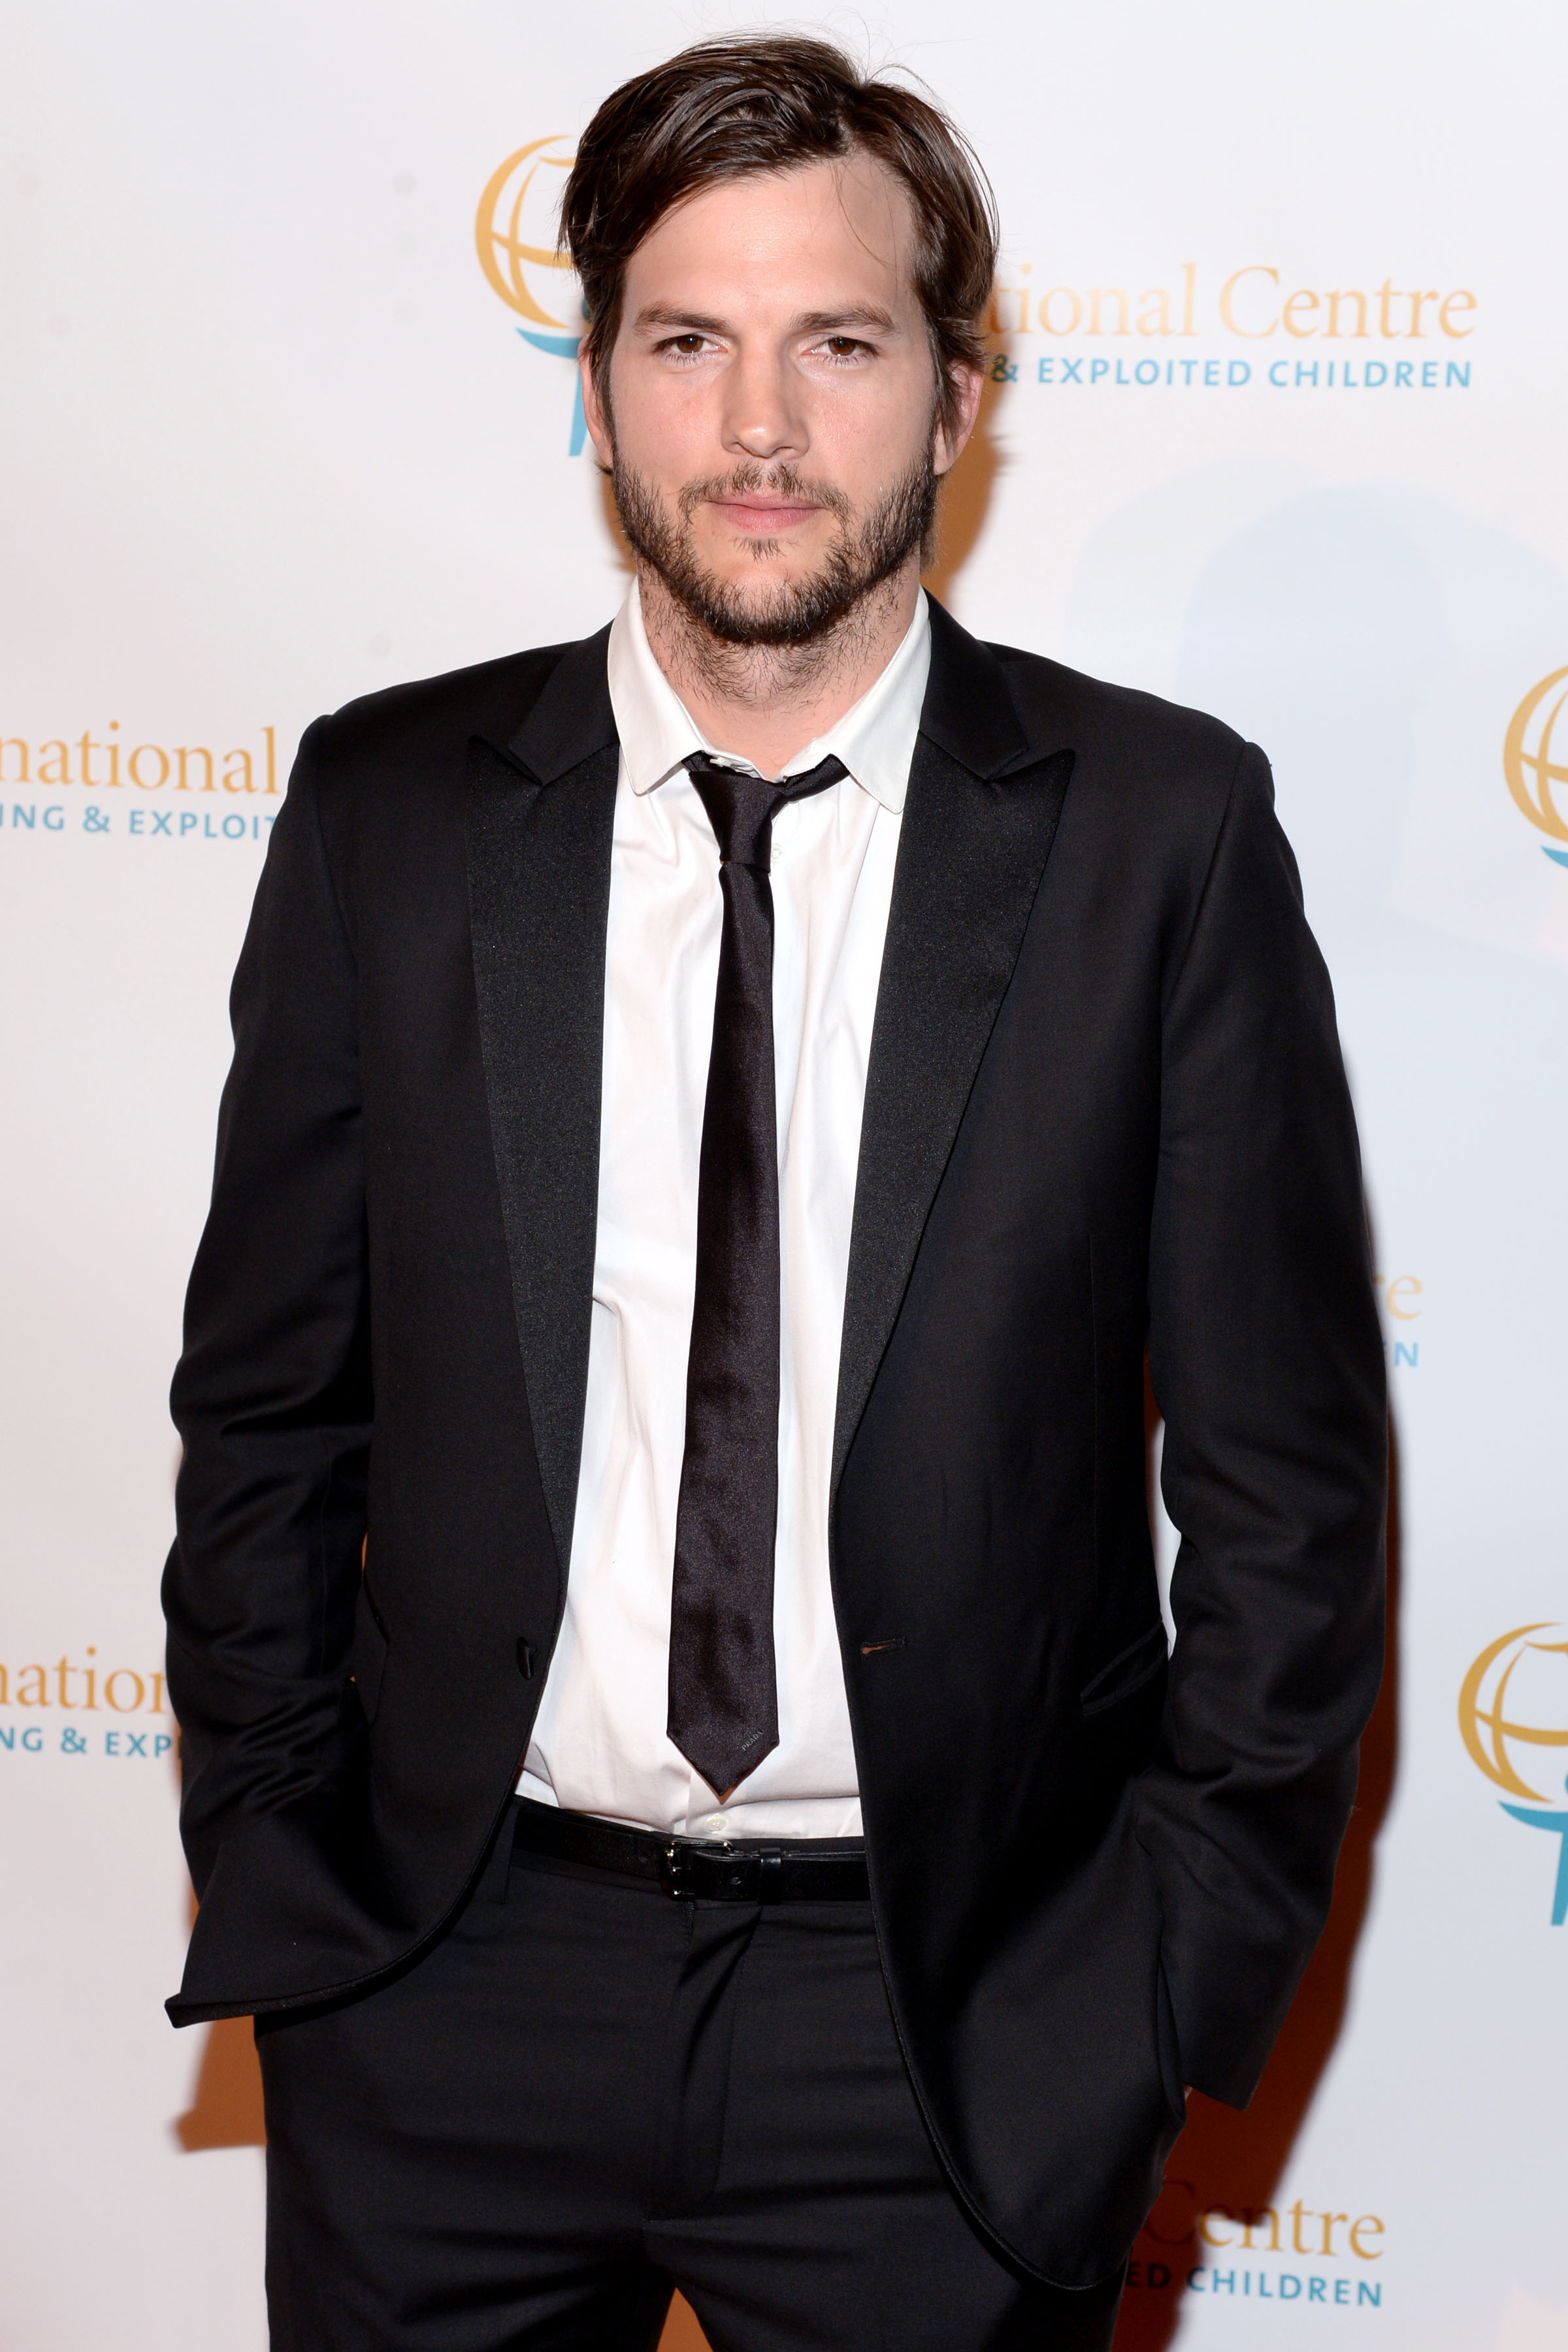 Ashton Kutcher at International Centre for Missing & Exploited Children's Inaugural Gala for Child Protection in New York City on May 7, 2015.